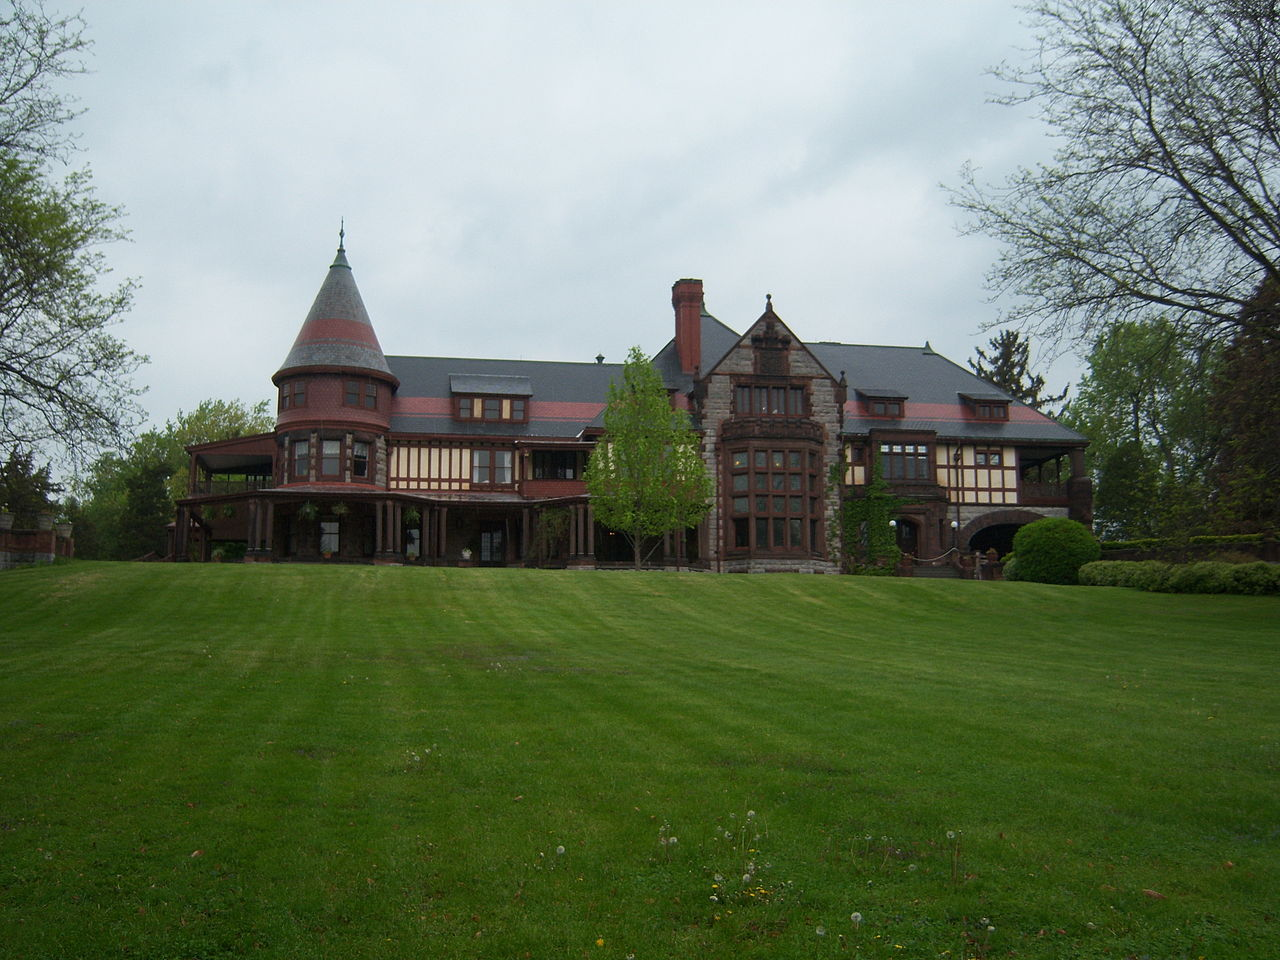 The Sonnenberg Mansion was built in 1887 by Frederick and Mary Thompson.